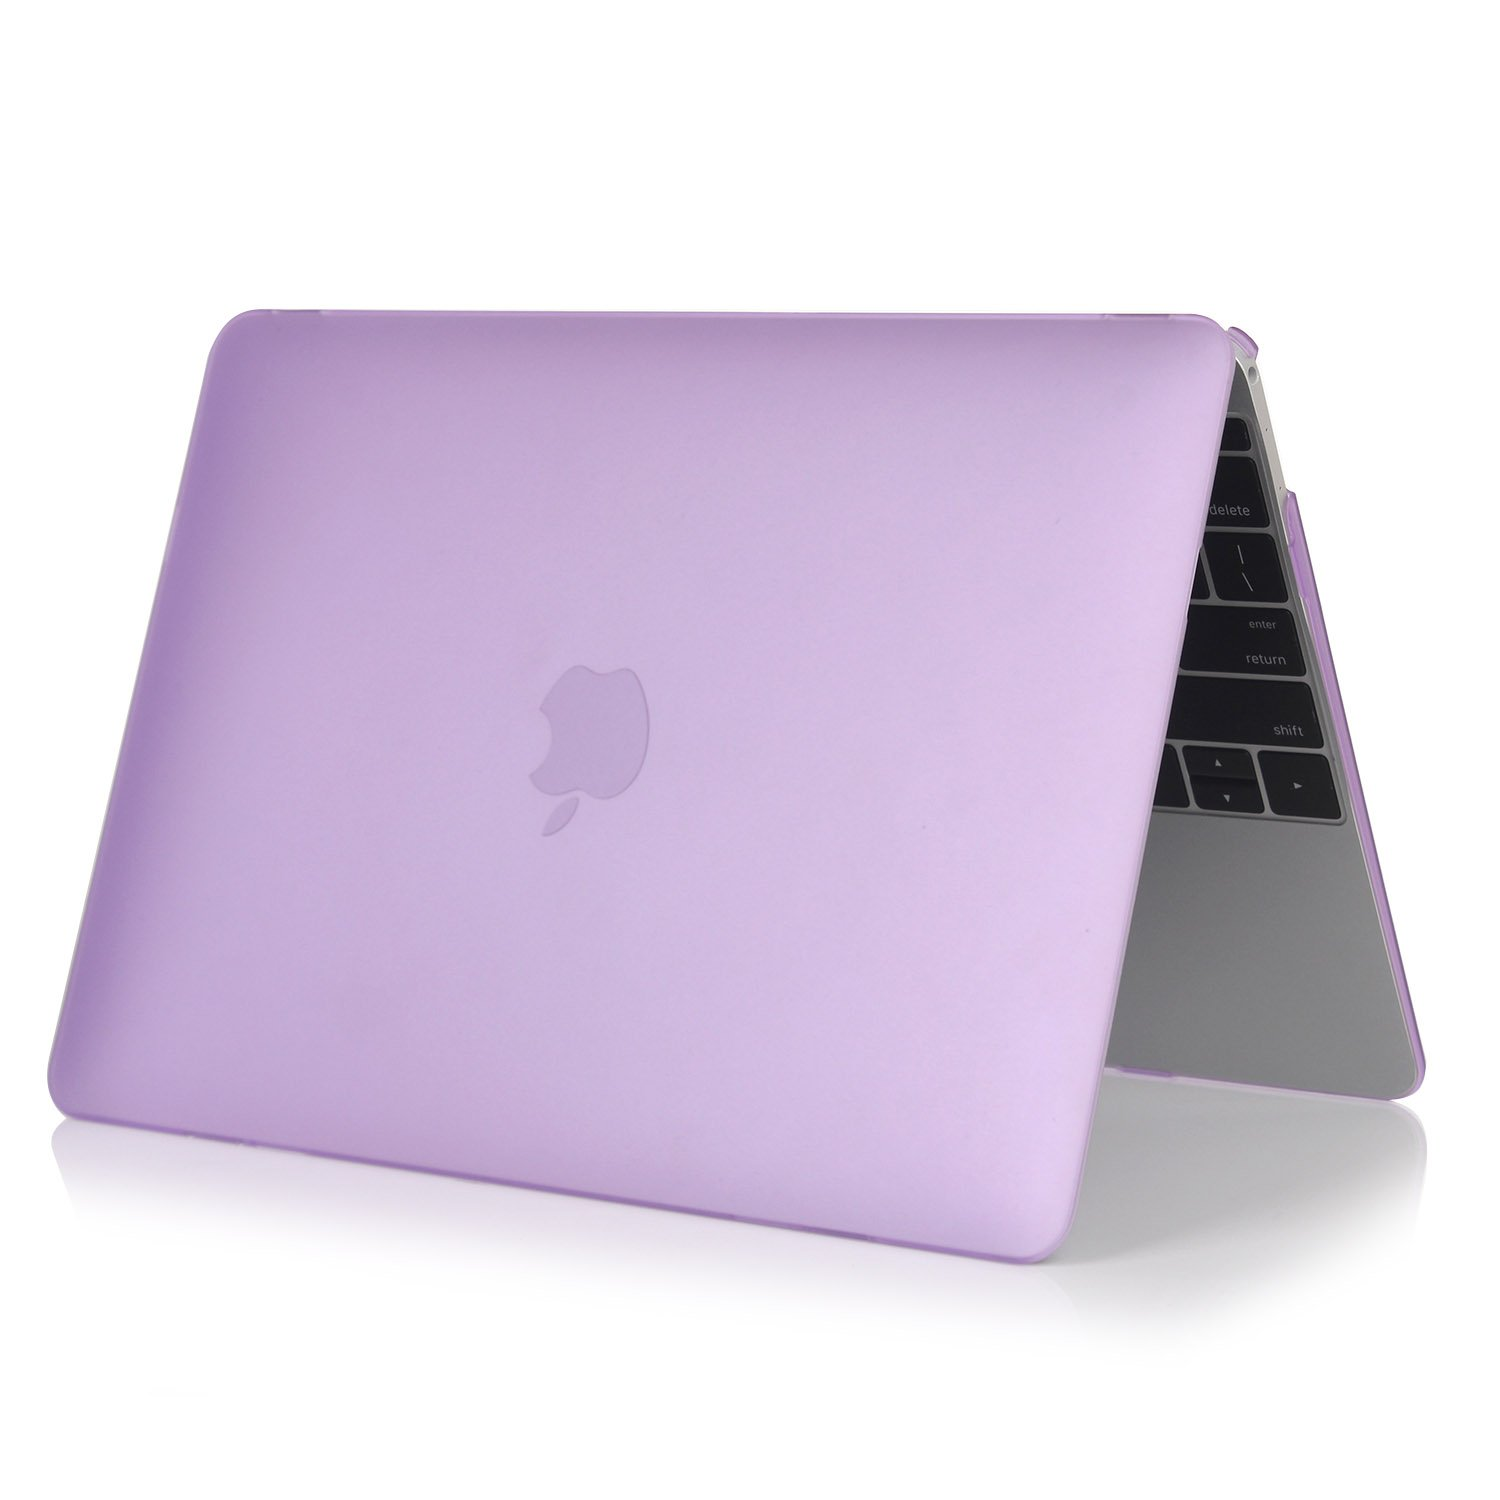 "13.3"" MOSISO PURPLE Matte Case for MacBook Air Laptop 9 COLORS FAST FREE SHIPPING USA"